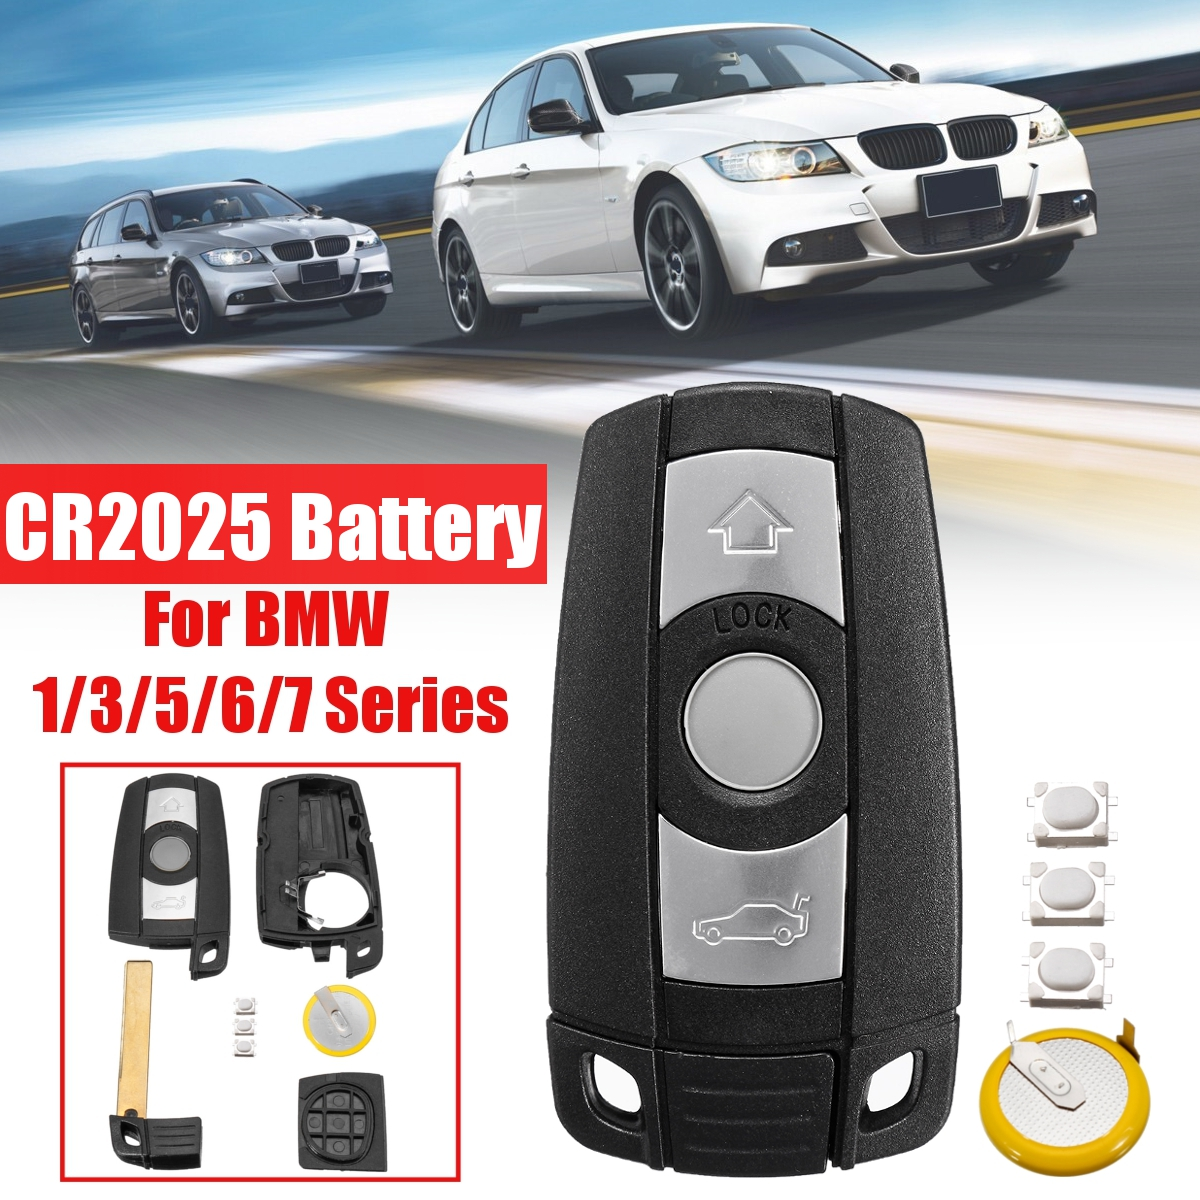 With Blade Battery Remote 3 Button Car Key Shell Case Styling Cover Trim For BMW 1/3/5/6/7 Series E90 E92 E93 E60 E61 X1 X5 X6(China)